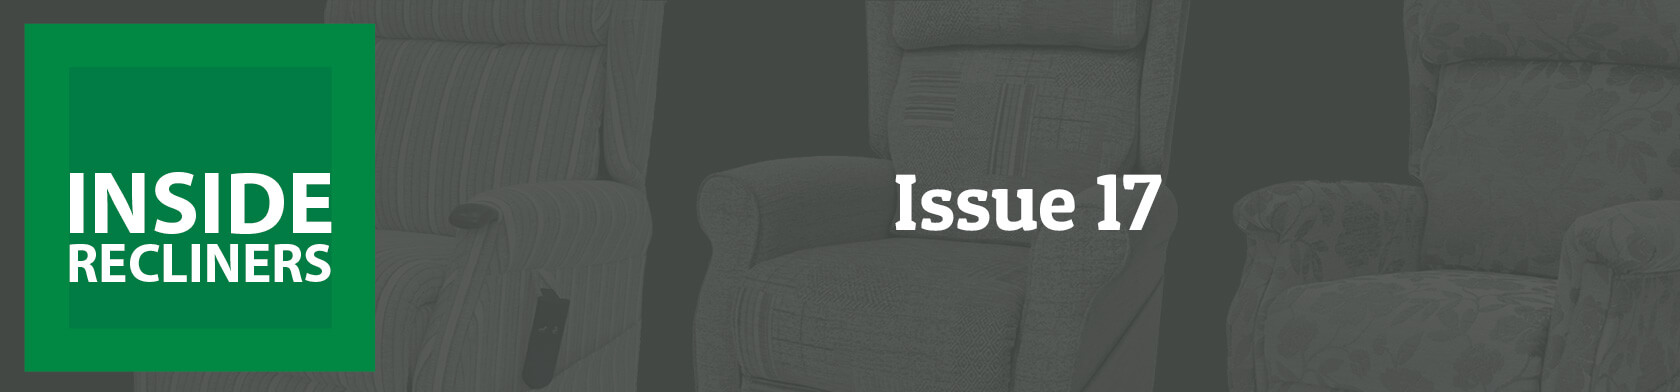 Inside Recliners — Issue 17